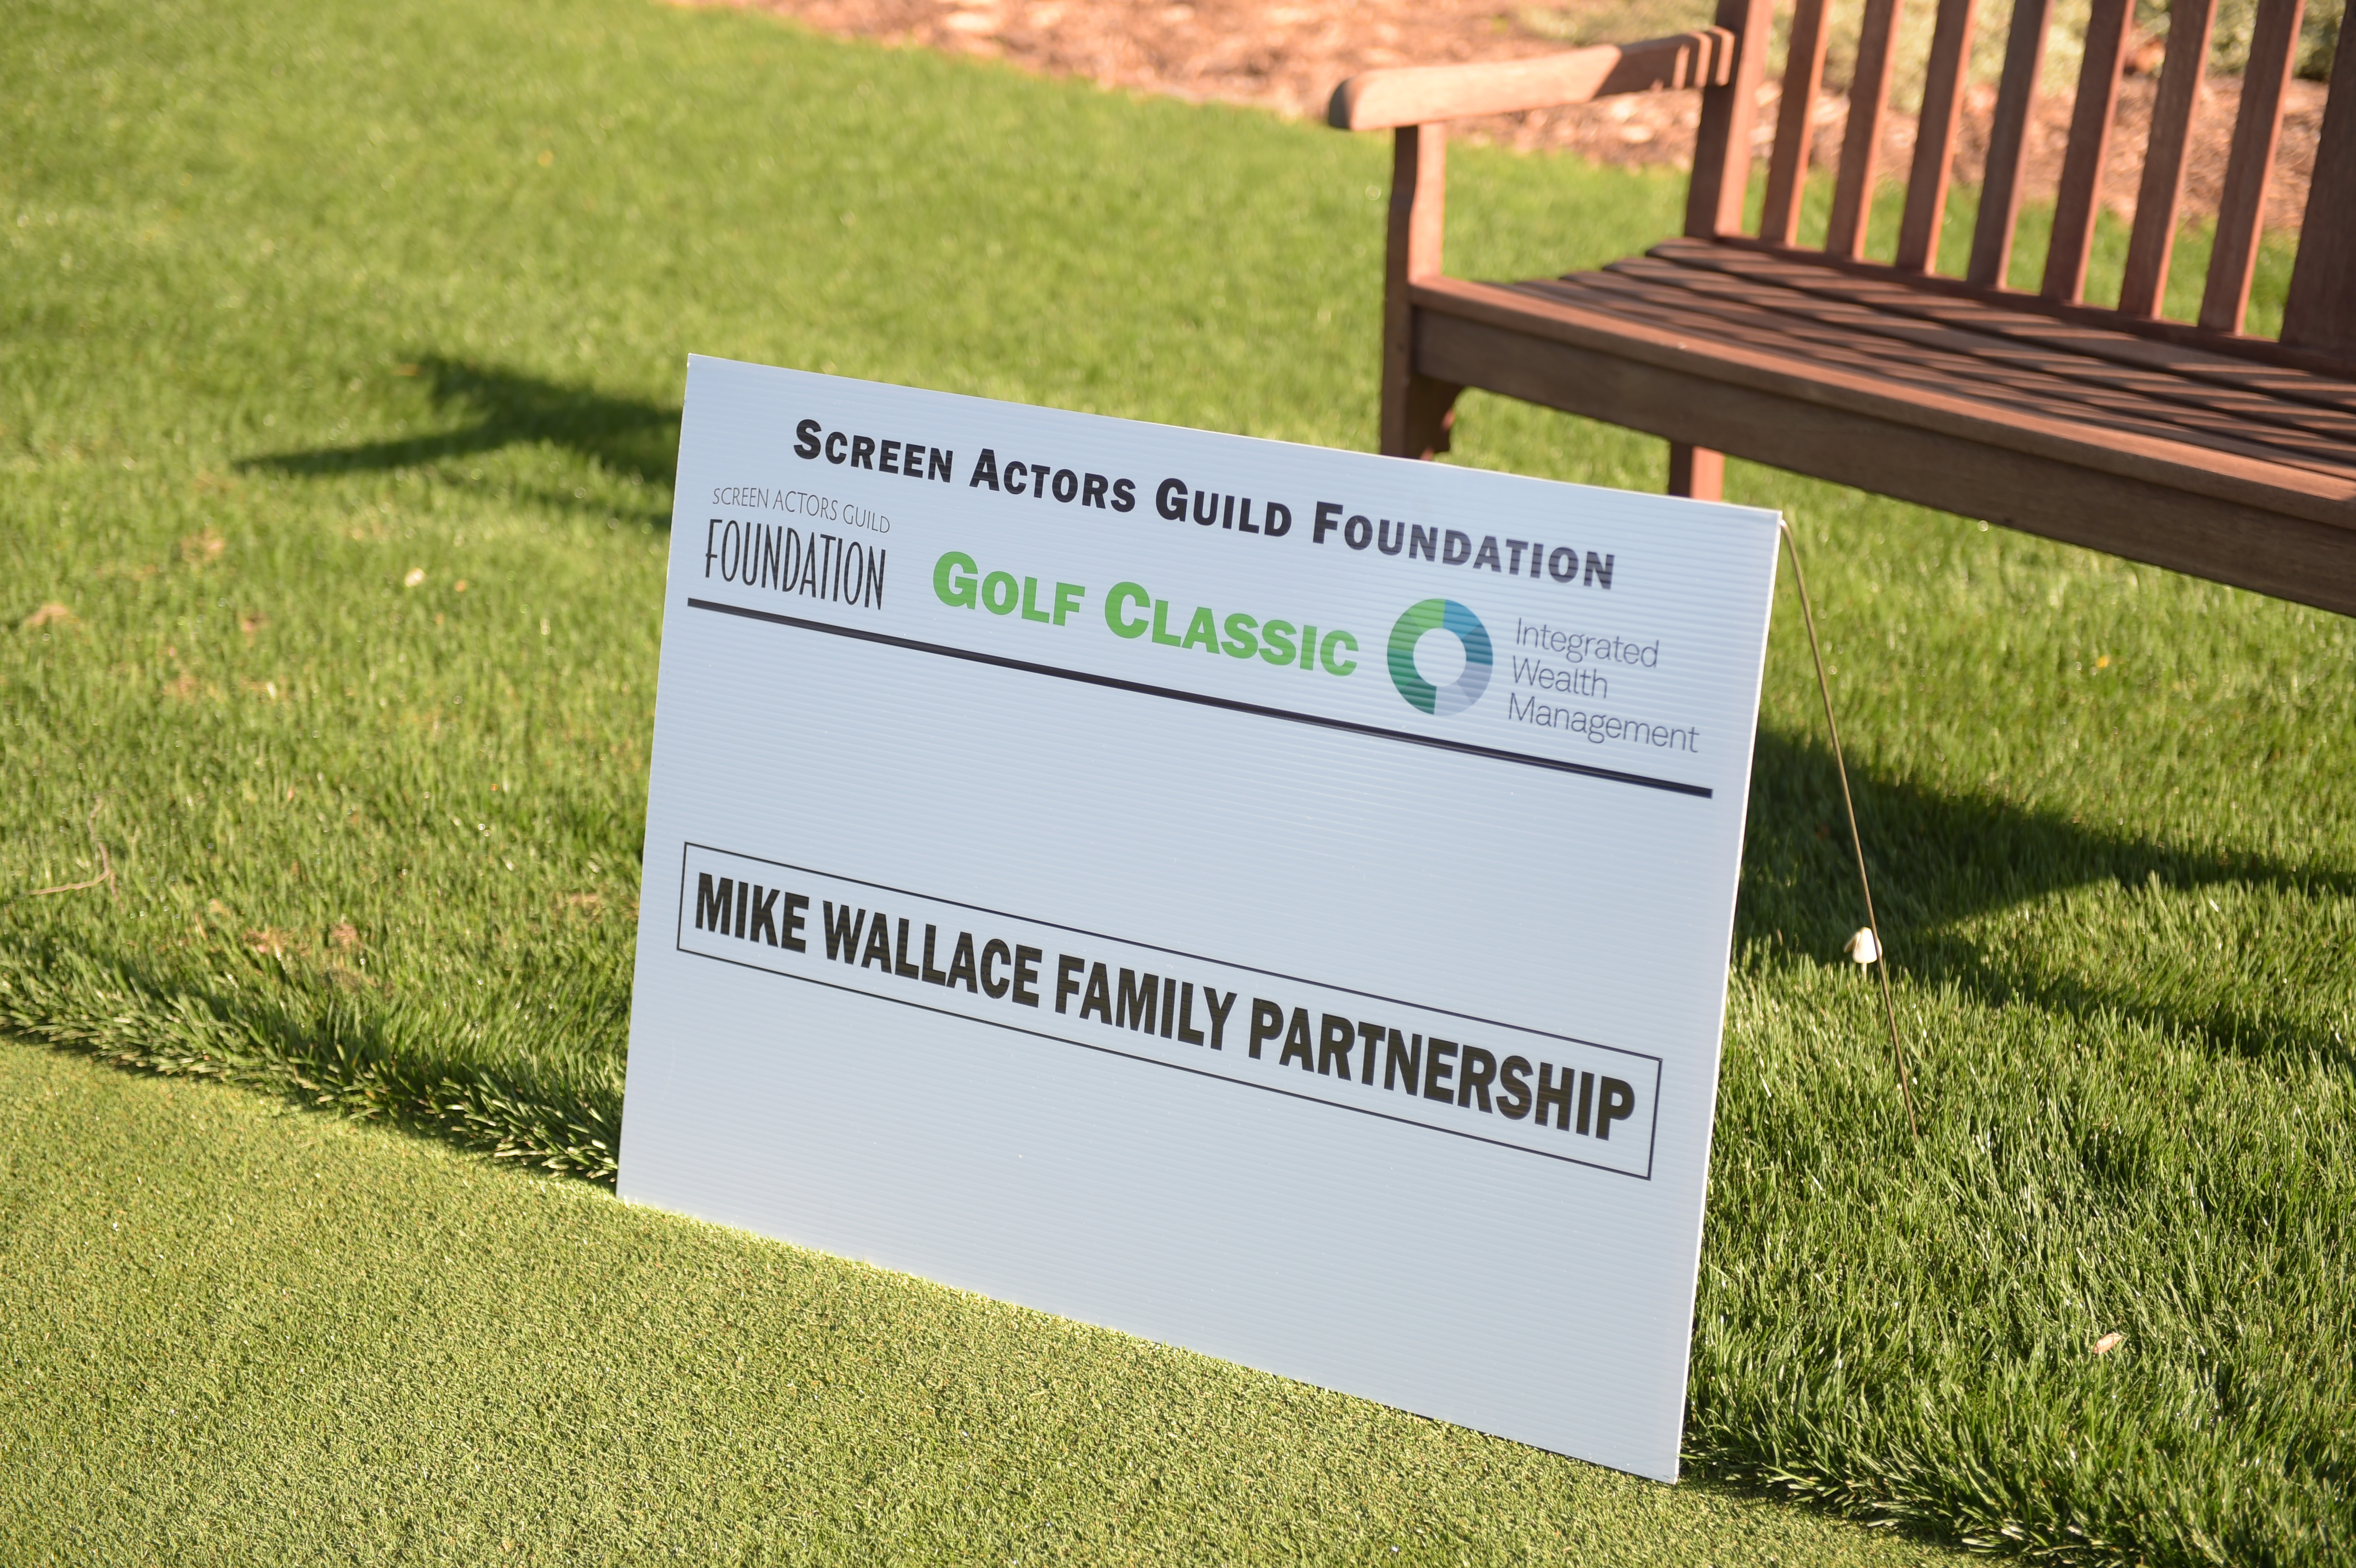 Mike Wallace Family Partnership sponsors The Screen Actors Guild Foundation's 6th Annual Los Angeles Golf Classic. (Photo by Jason Kempin/Getty Images for The Screen Actors Guild Foundation)